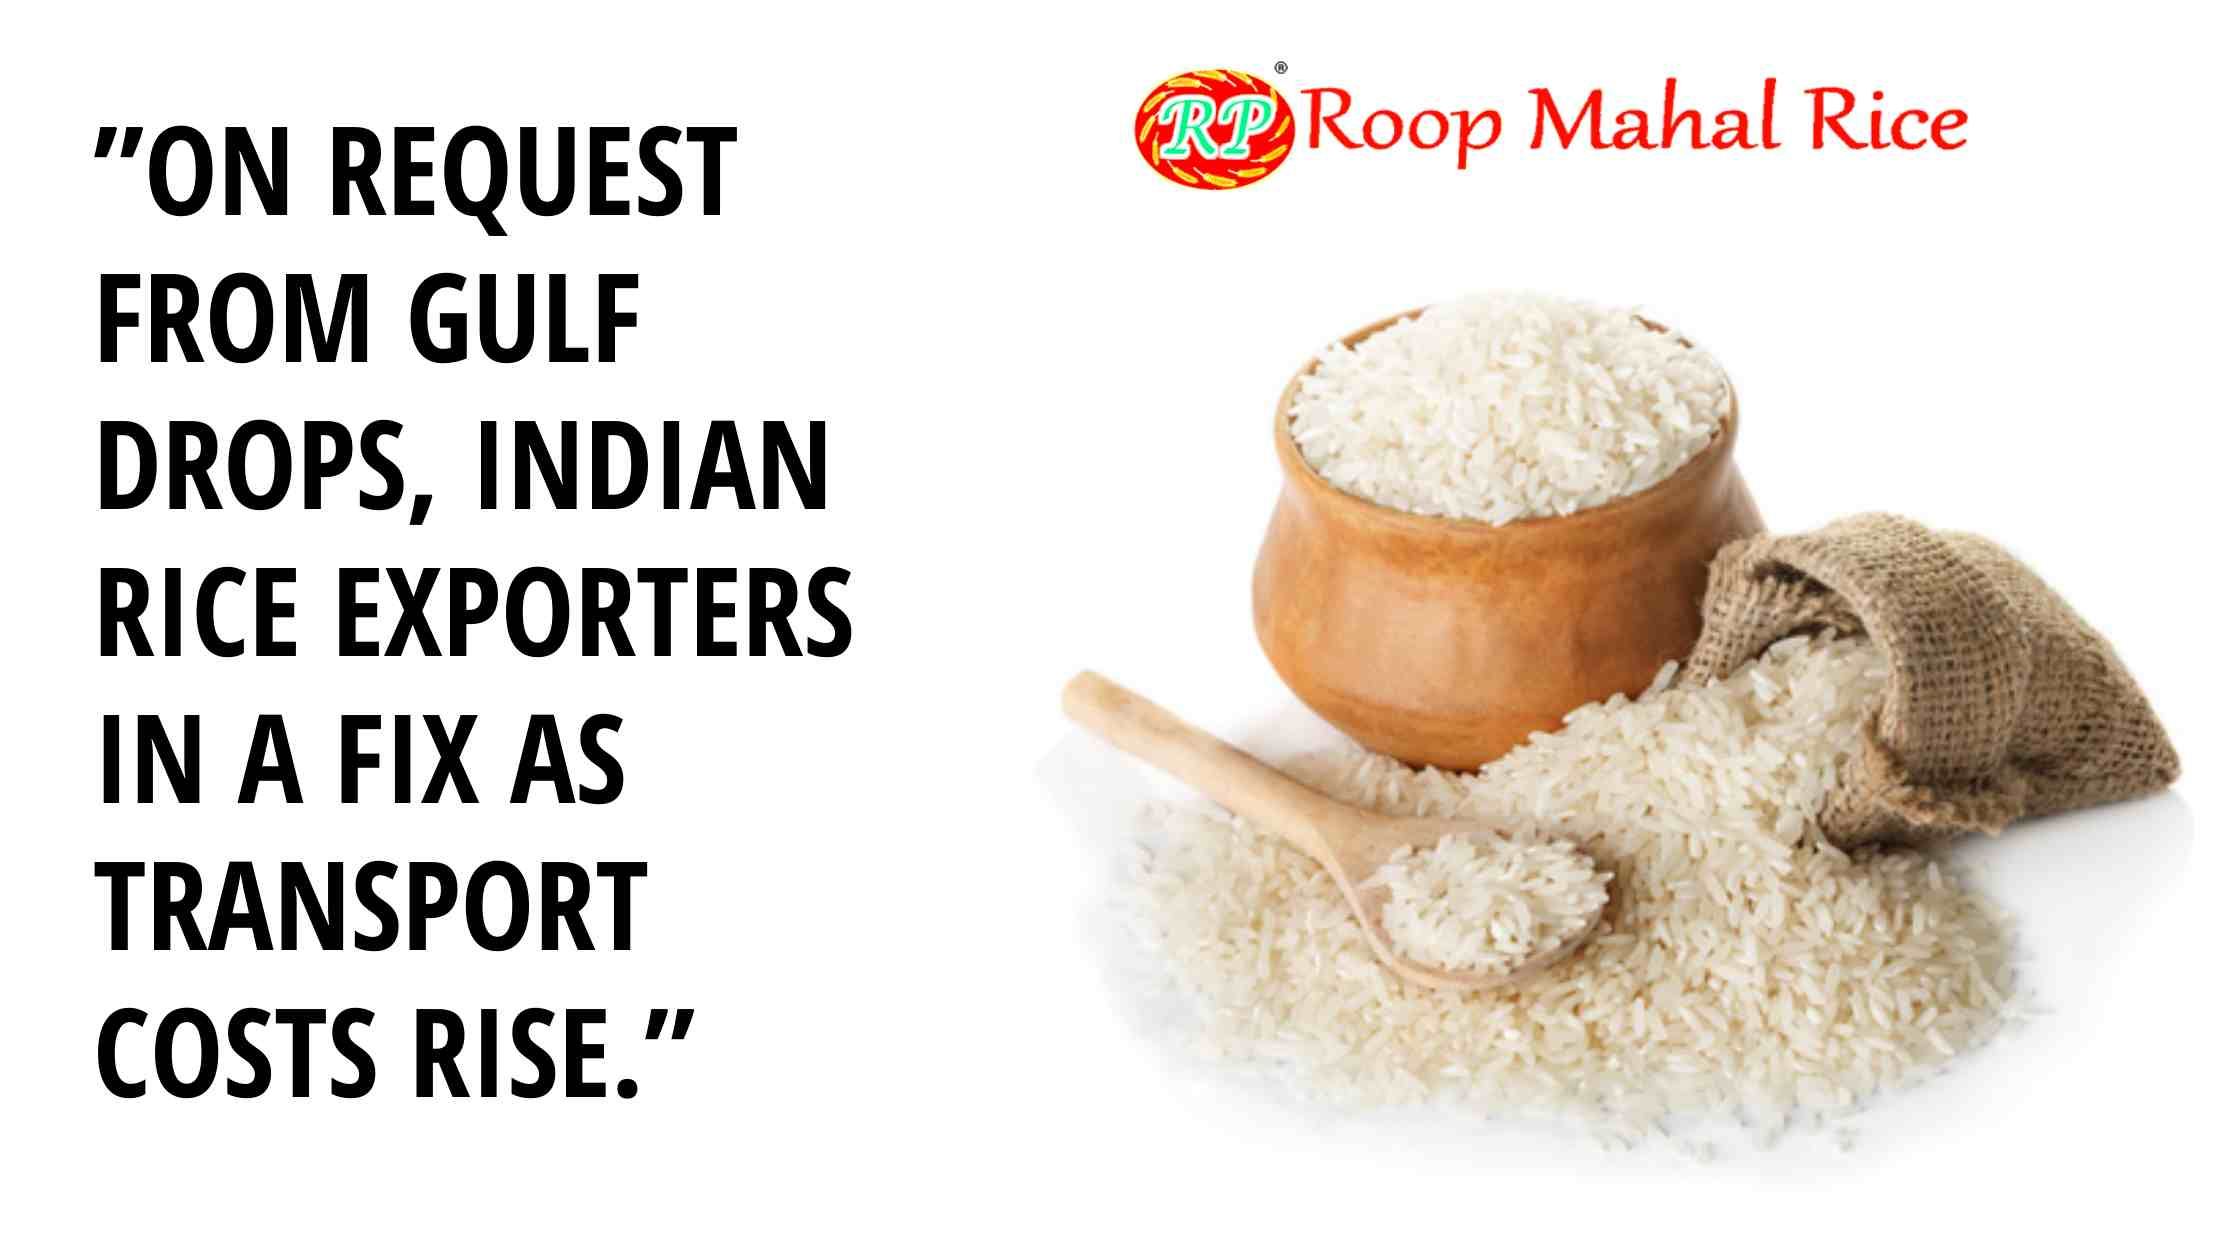 On request from Gulf drops, Indian rice exporters in a fix as transport costs rise.